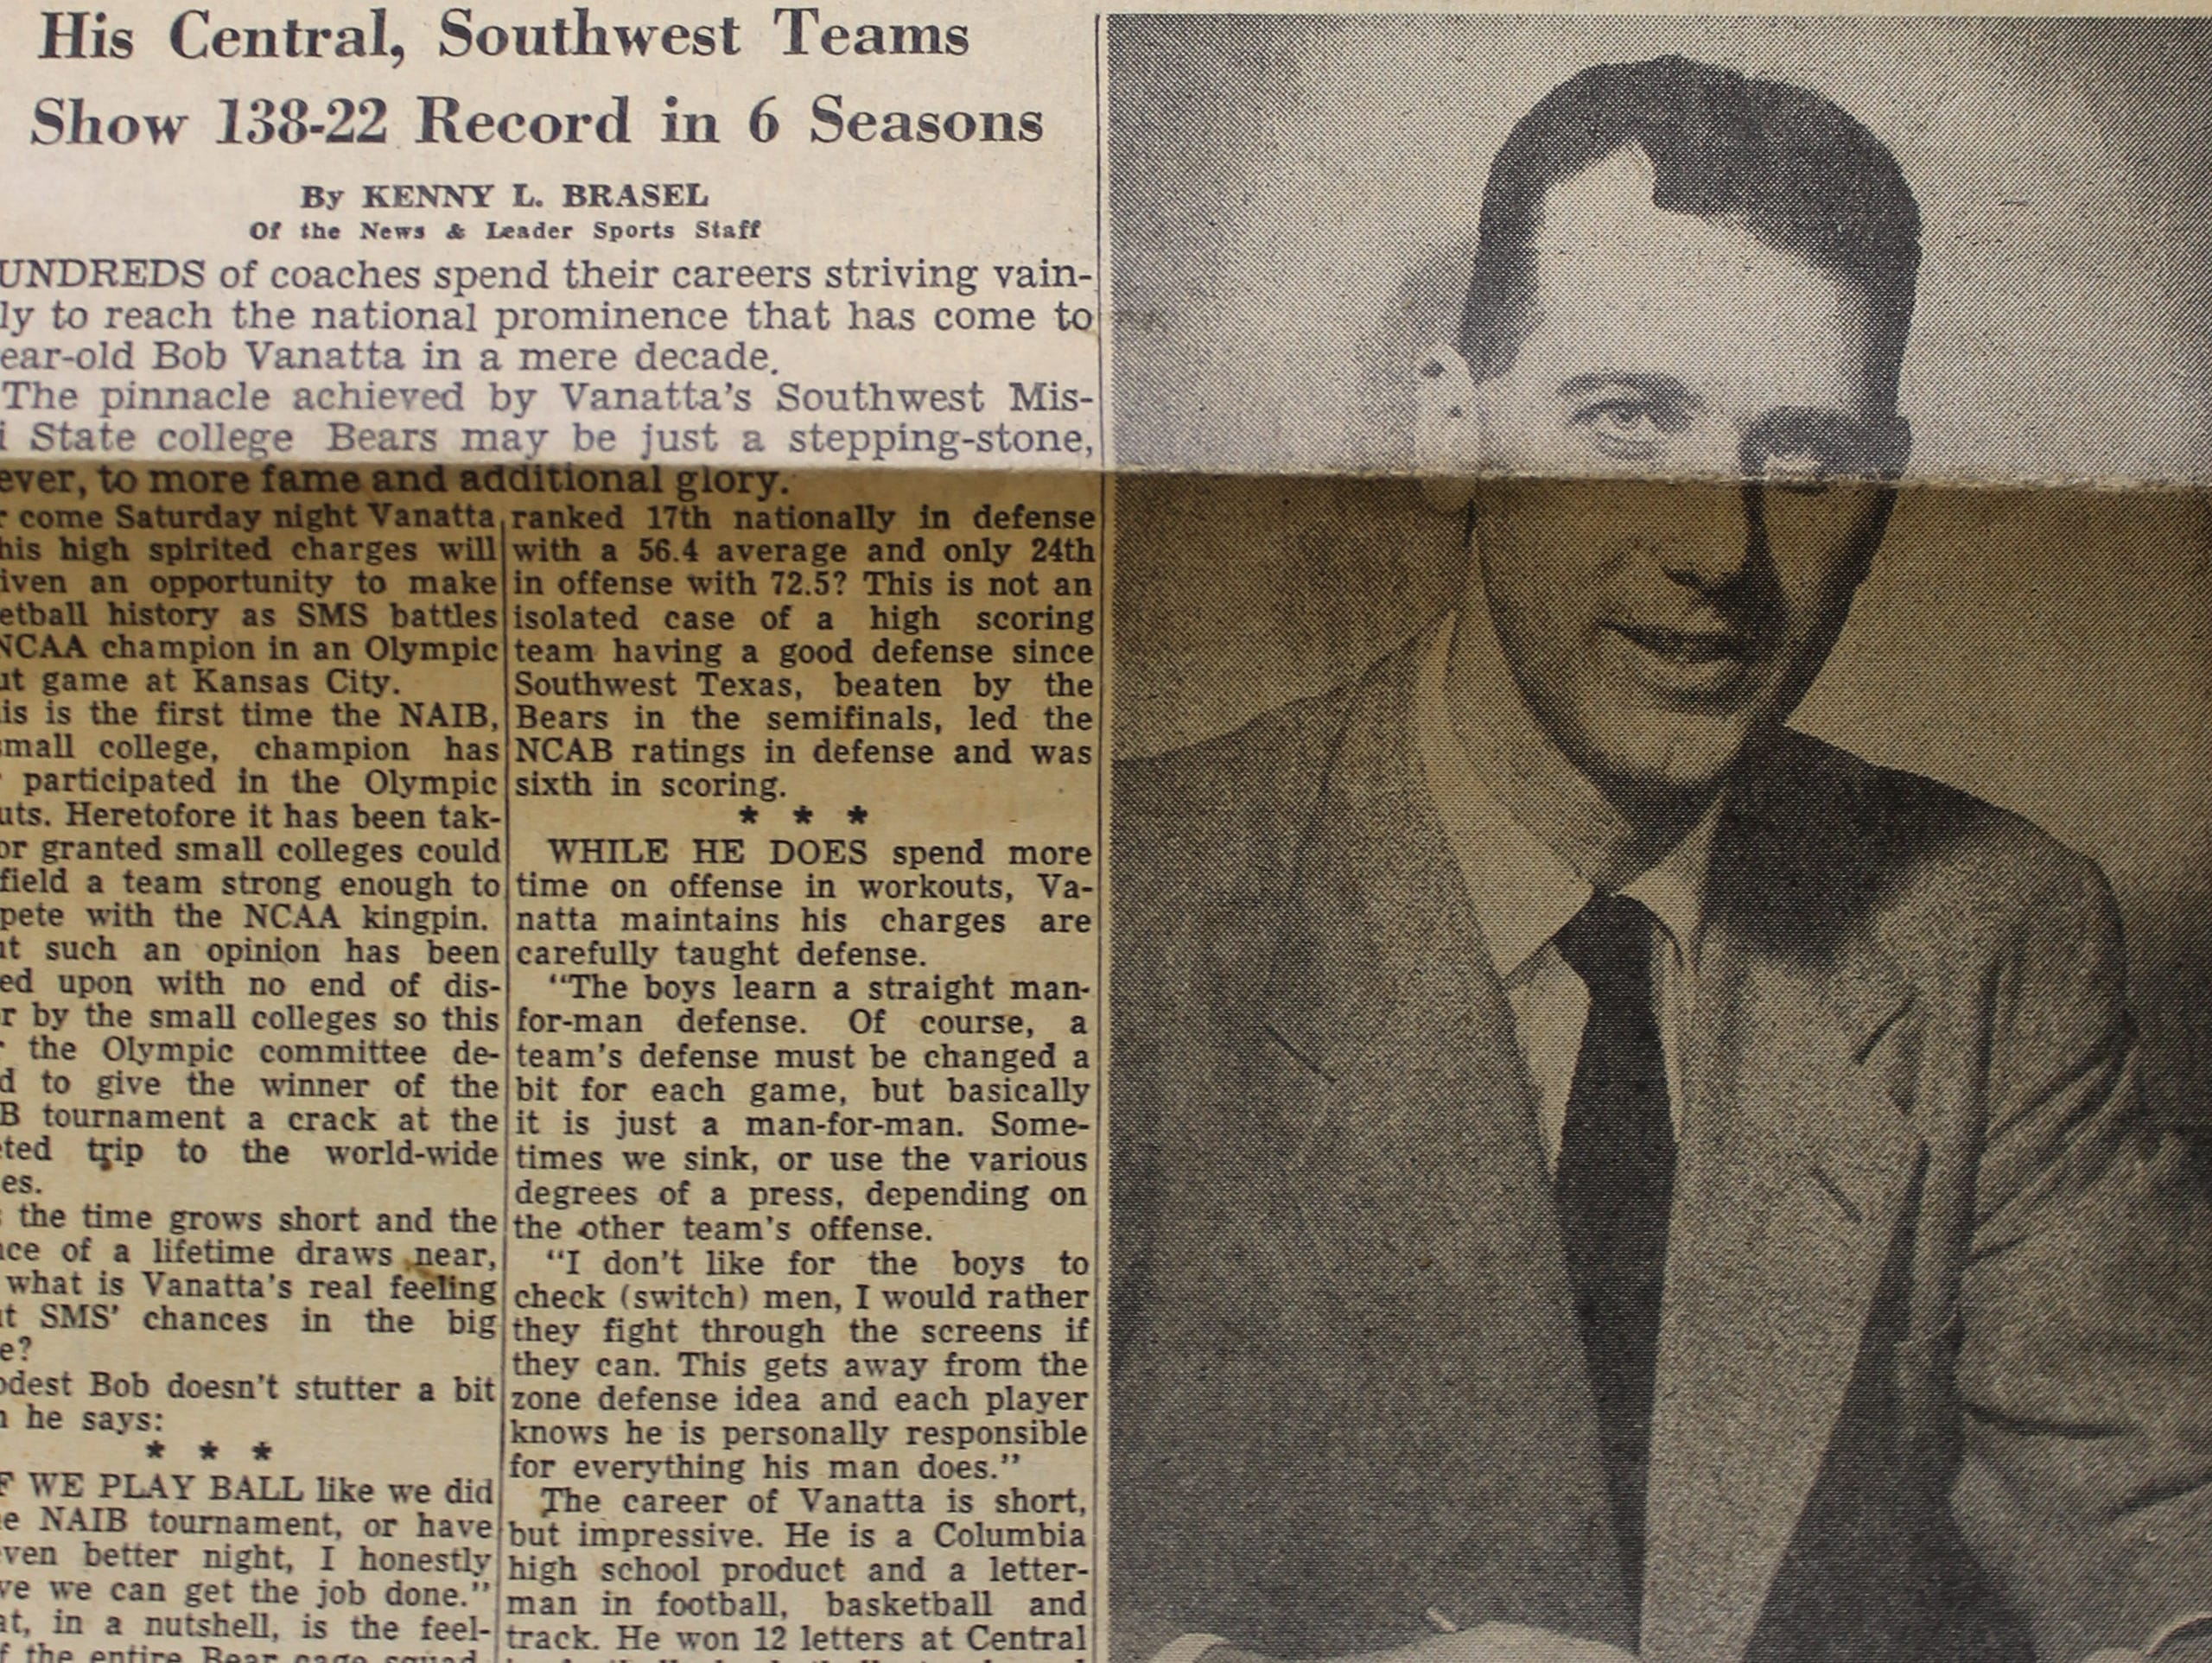 A story from the March 23, 1952 edition of the Springfield News & Leader profiles coach Bob Vanatta and his NAIB national championship team's preparation for a postseason game against 1952 NCAA champion Kansas as part of the U.S. trials for the Olympics in Helsinki, Finland.